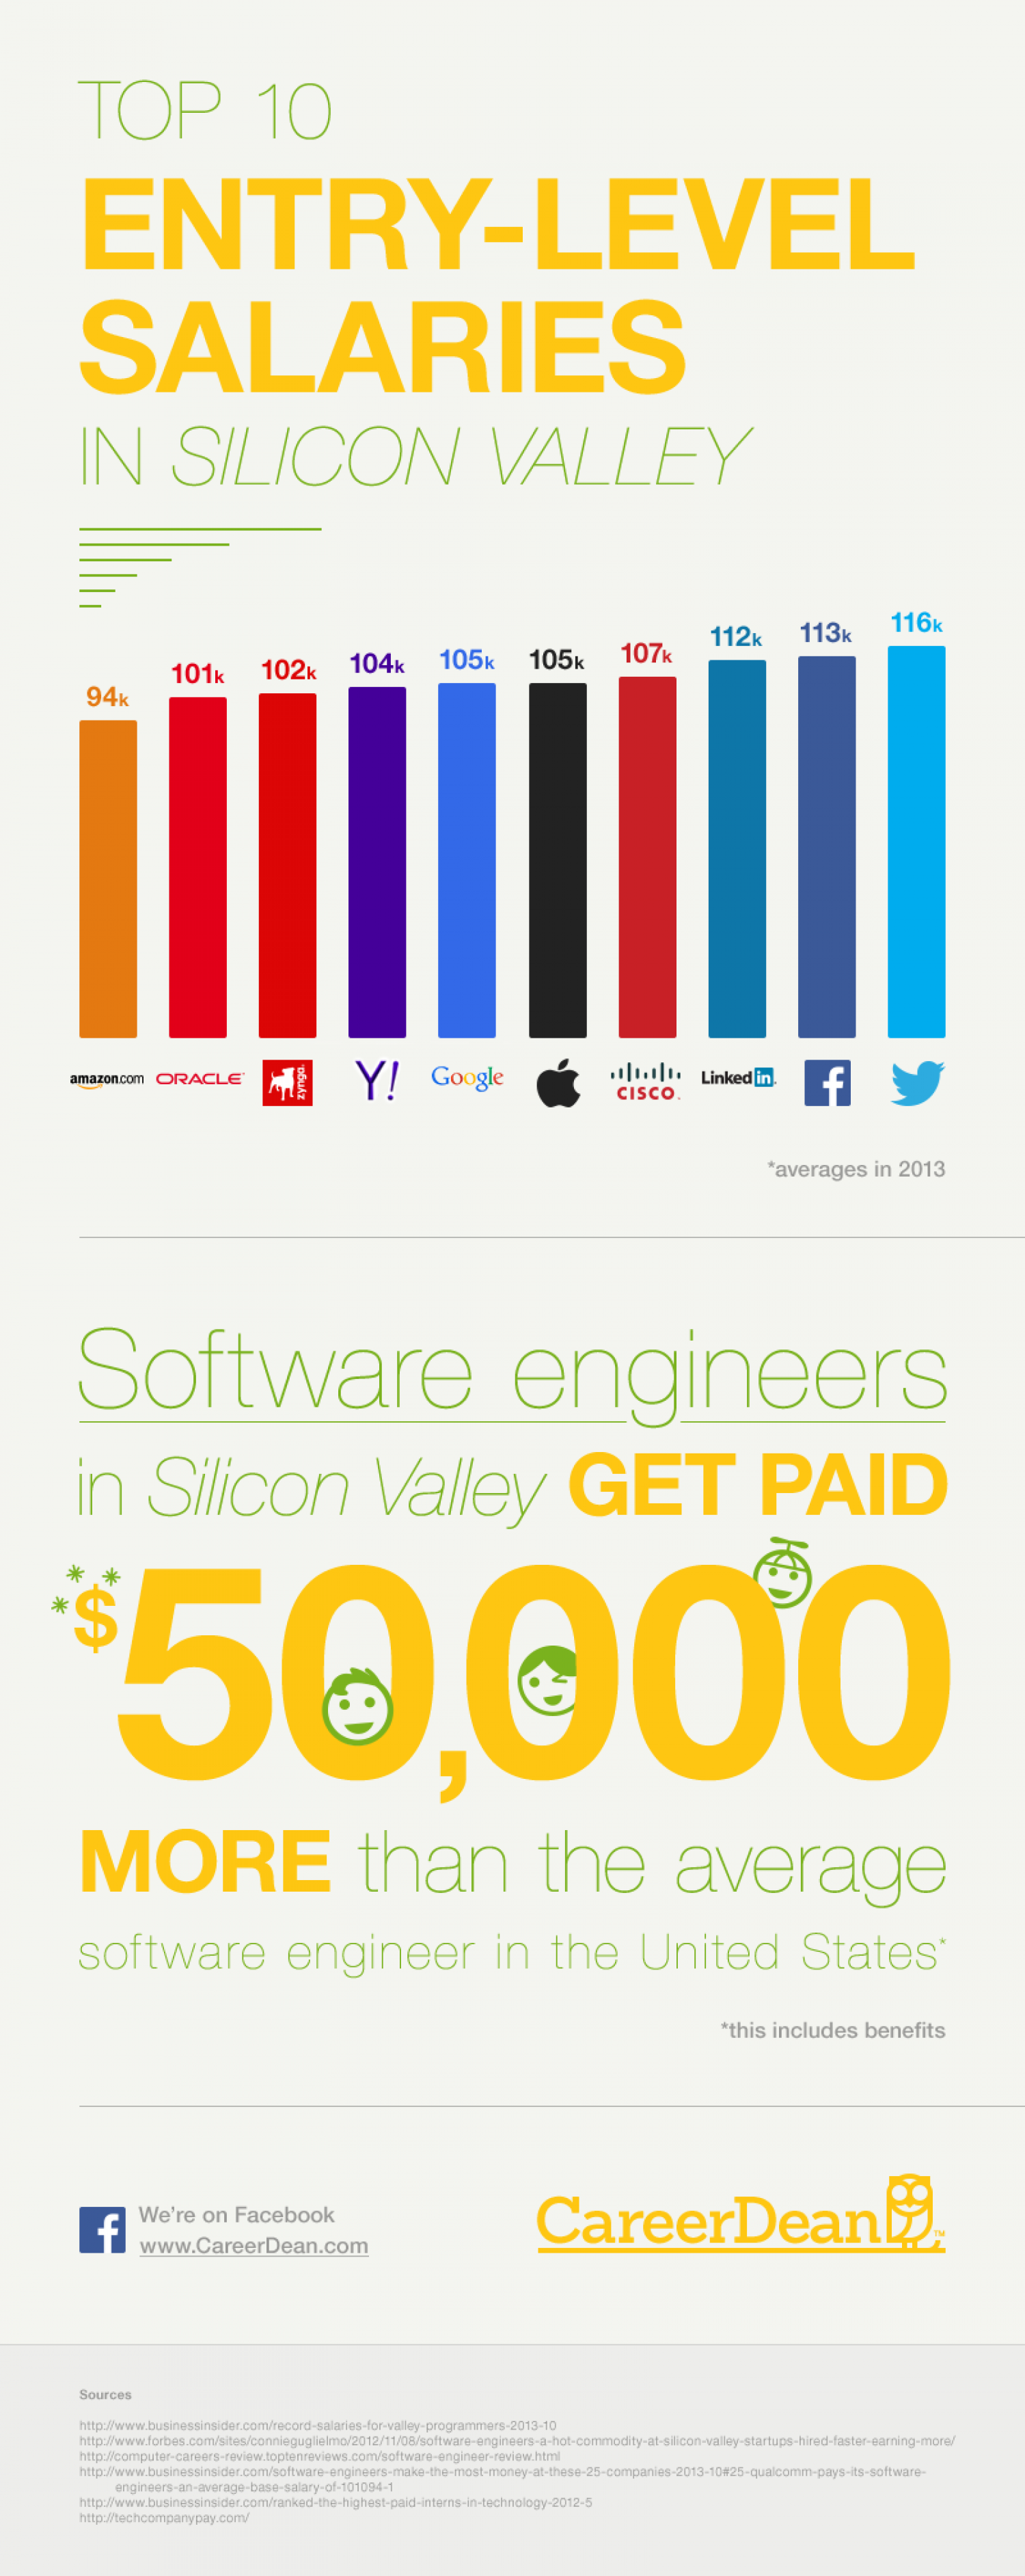 Top 10 Entry-Level Salaries in Silicon Valley Infographic